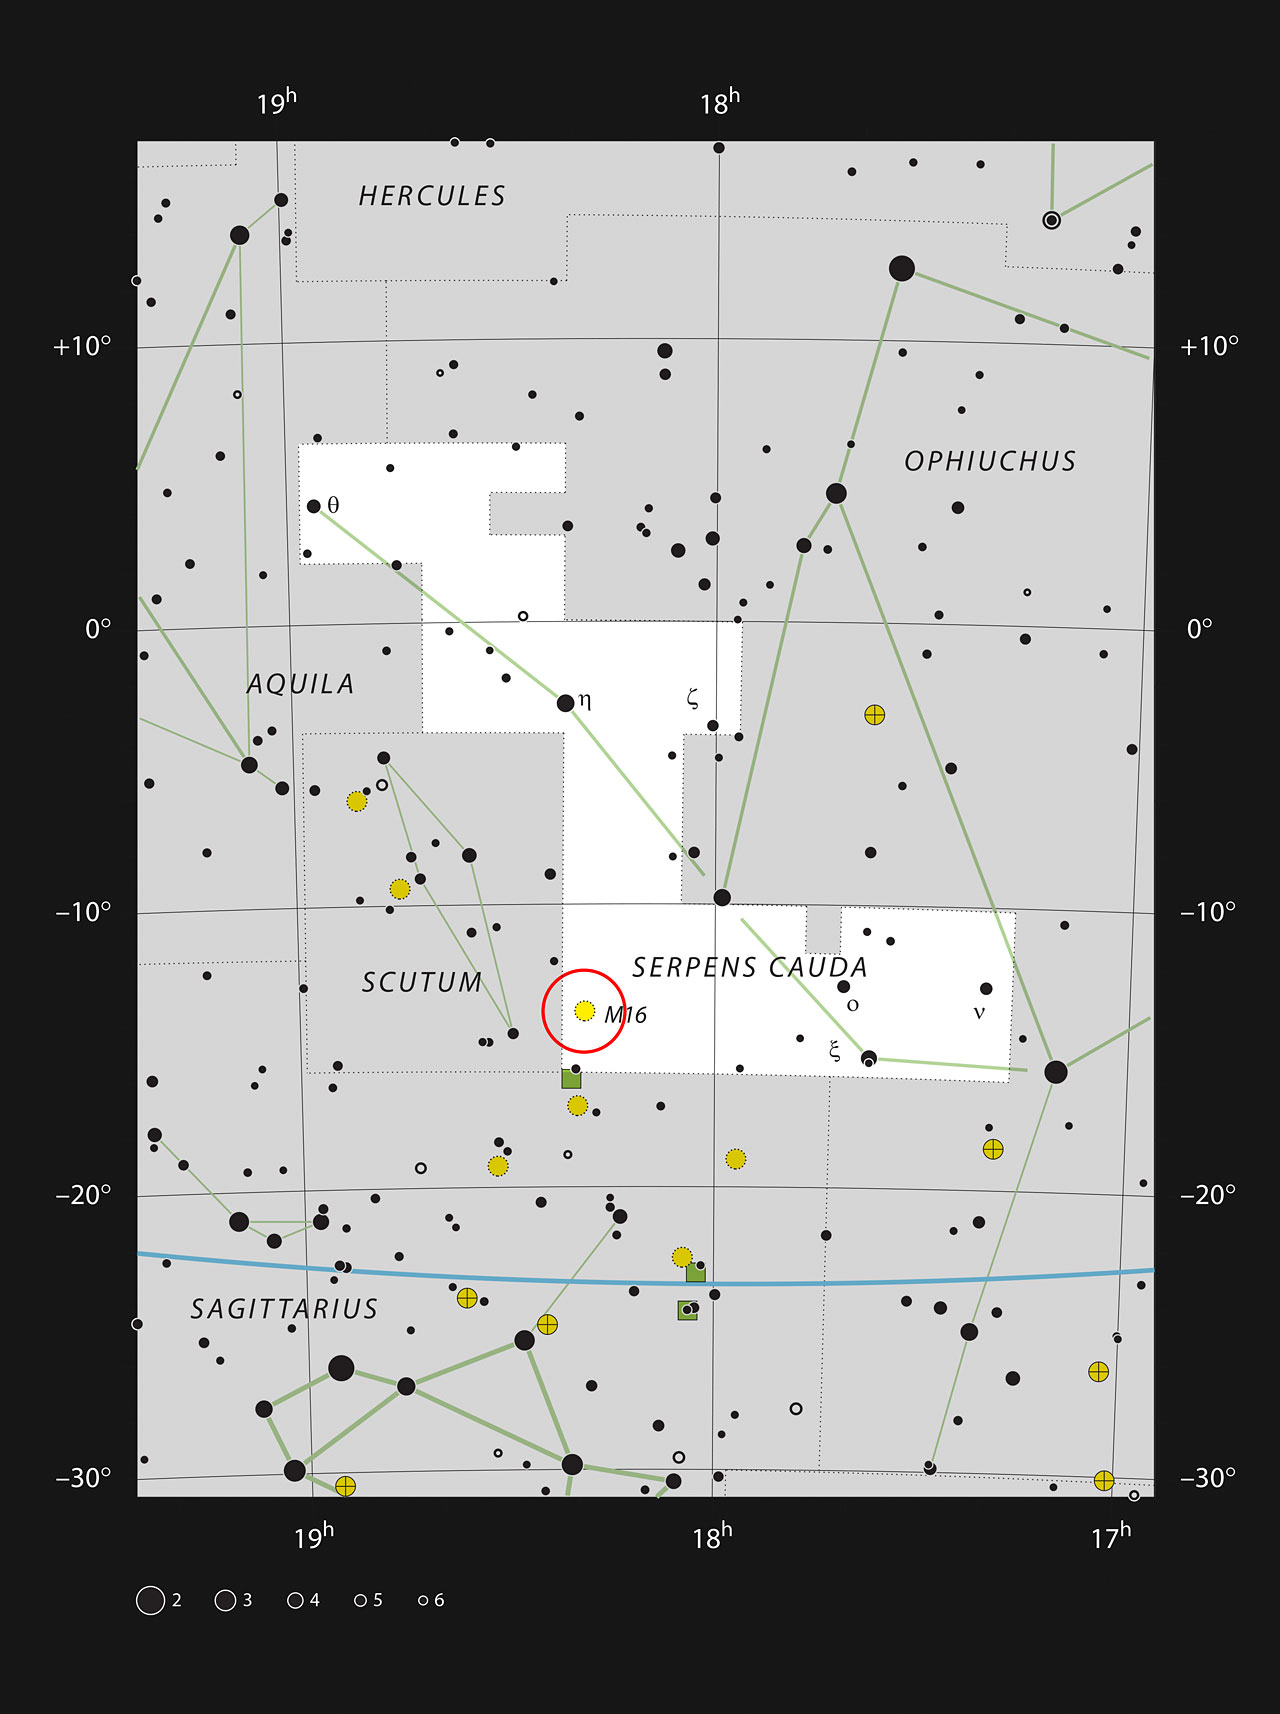 Messier 16 in the constellation of Serpens Cauda (The Tail of th